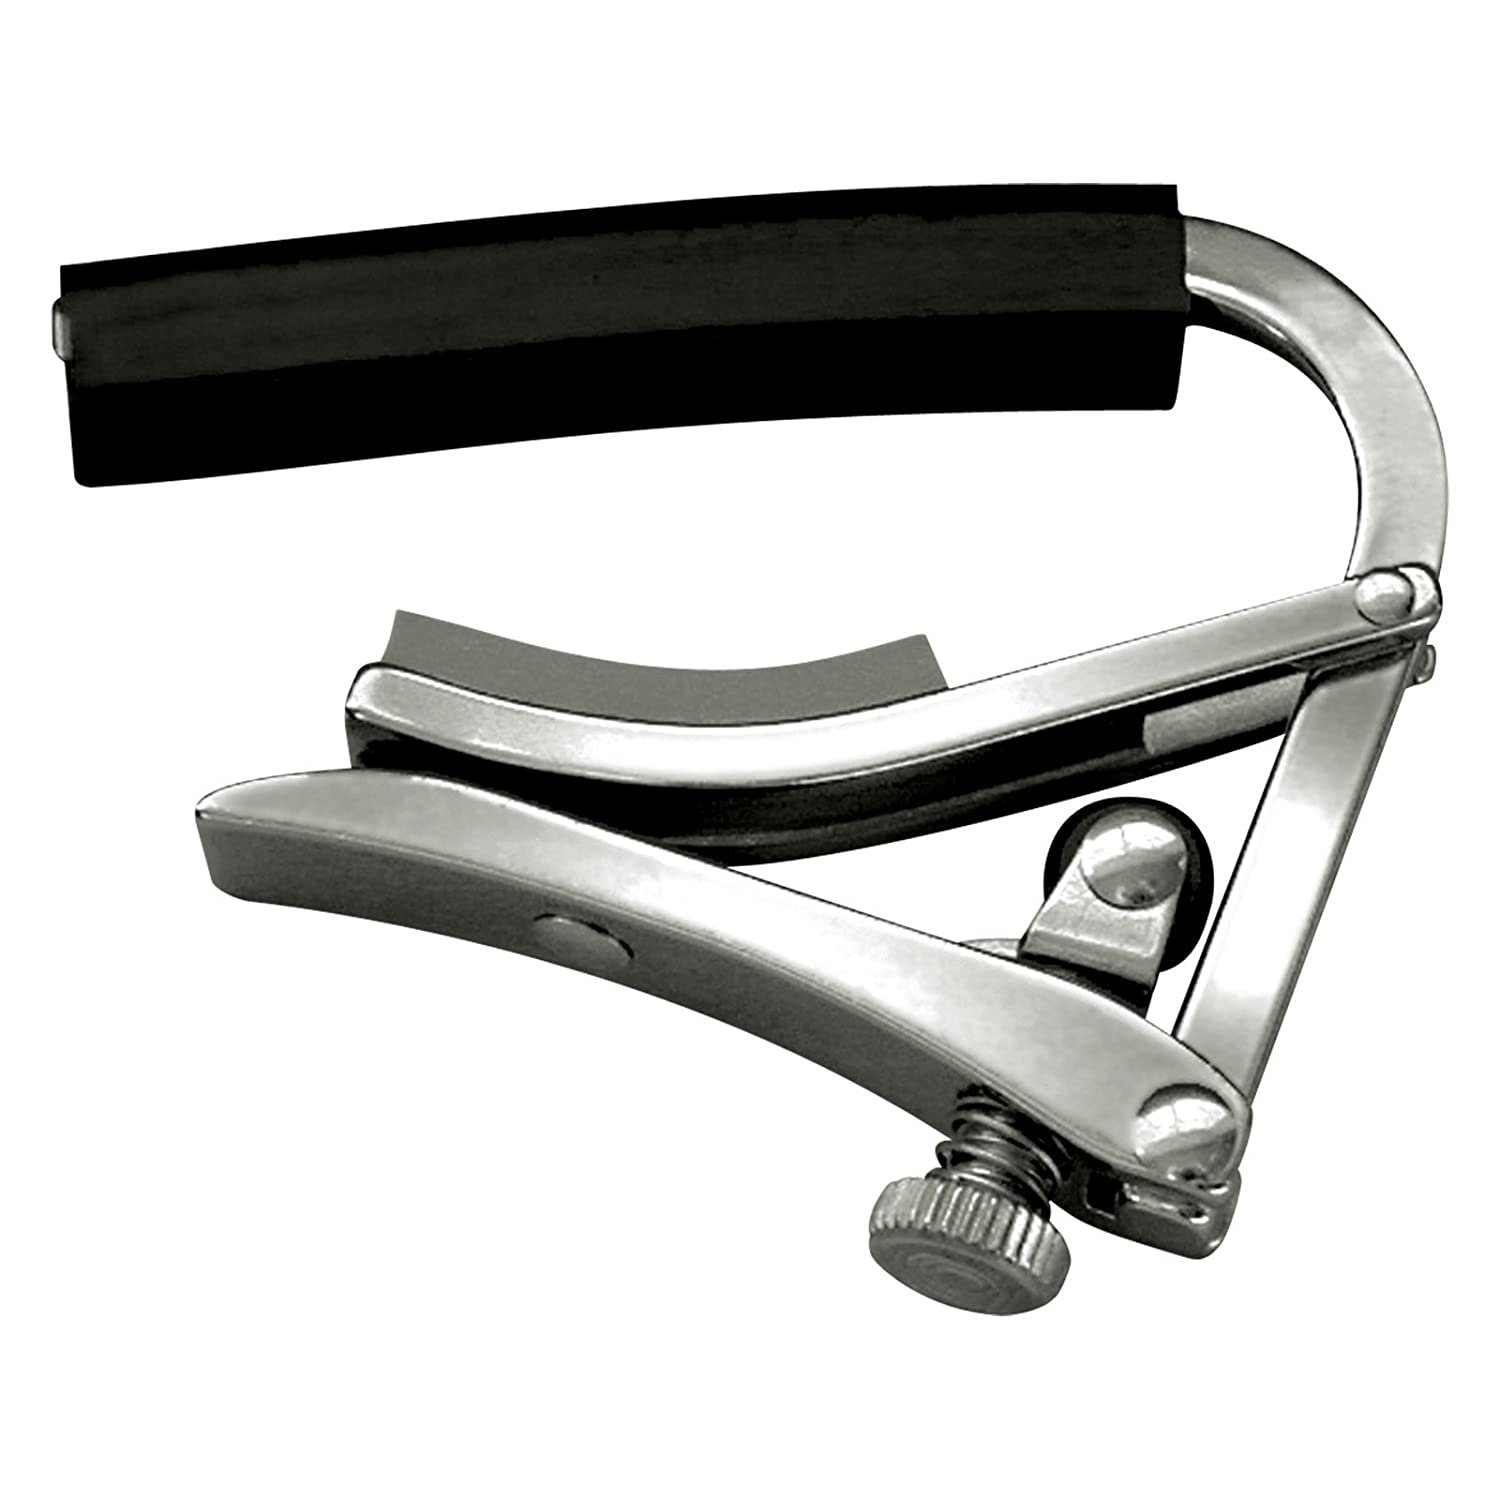 Shubb Deluxe Series GC-30 (S1) Acoustic Guitar Capo - Stainless Steel Saga Musical Instruments